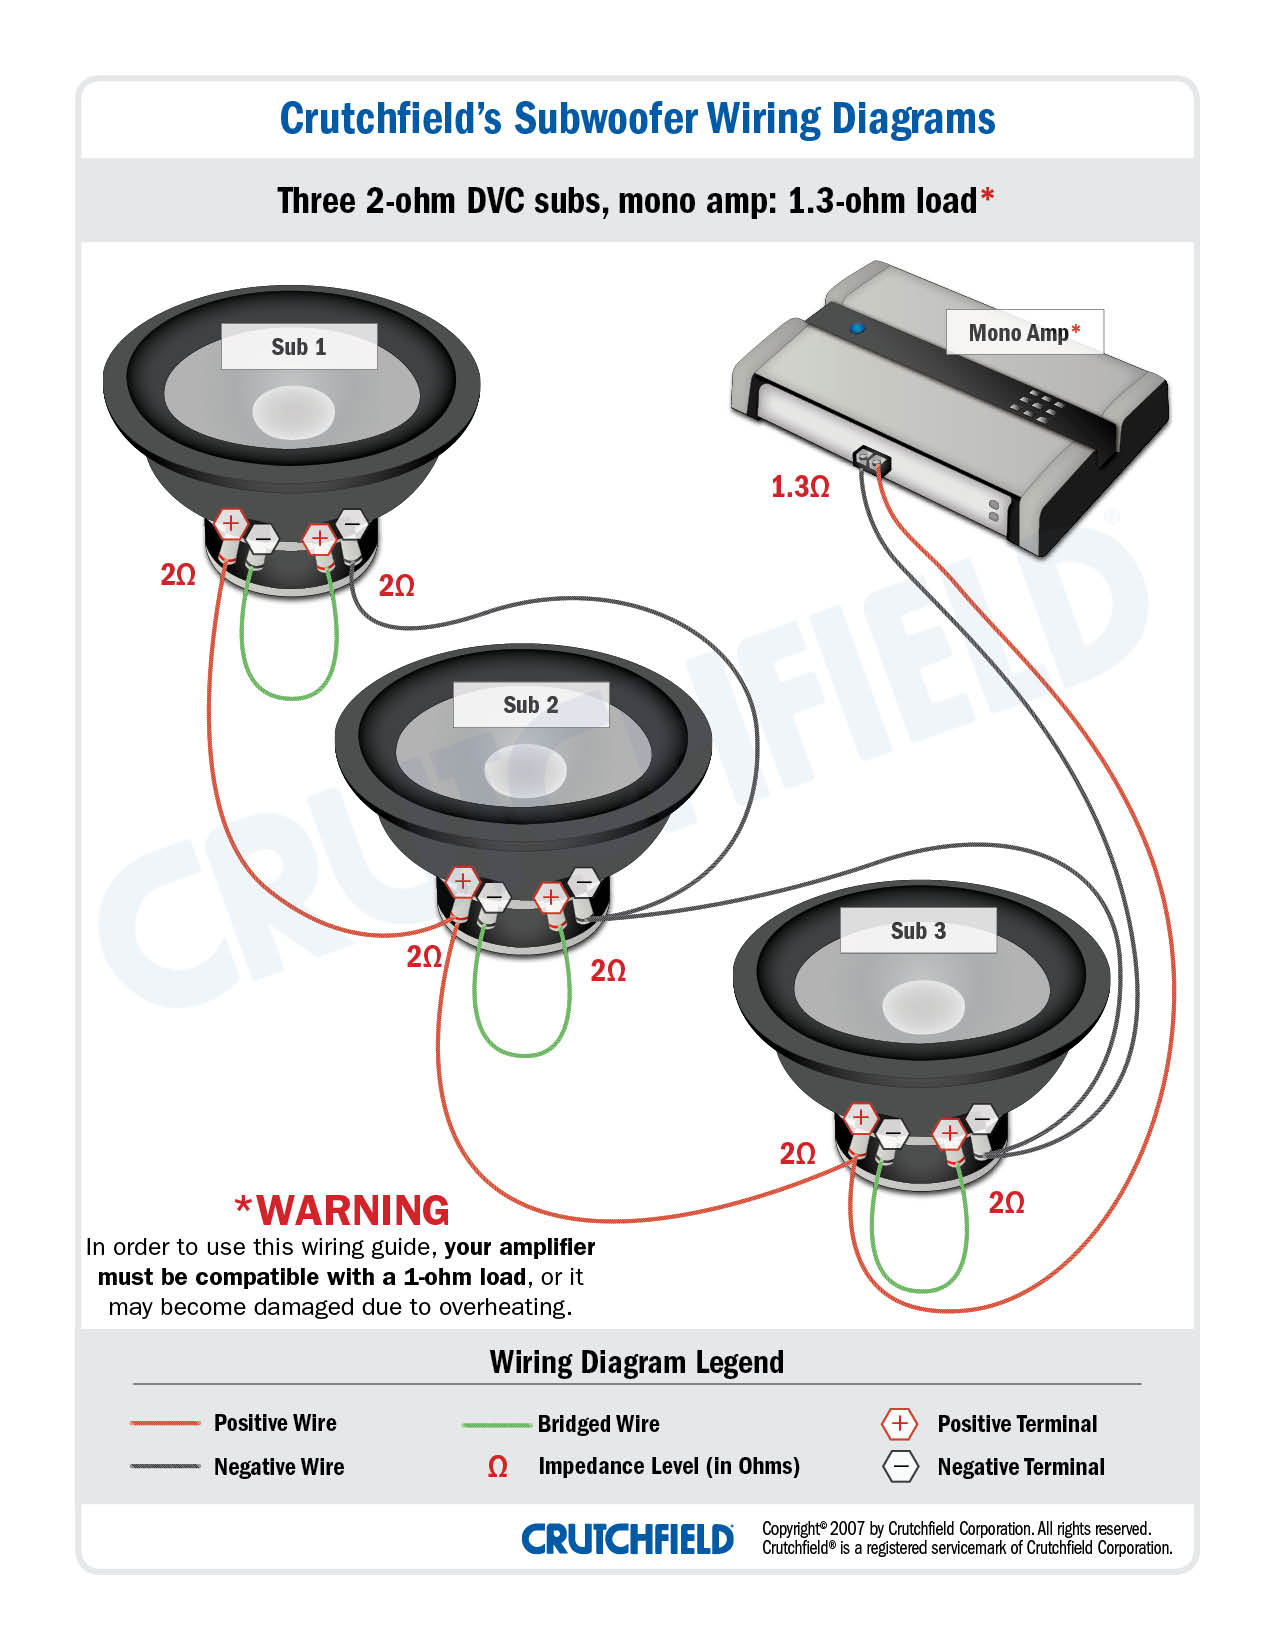 3 DVC 2 ohm mono low imp subwoofer wiring diagrams wiring harness subs at cita.asia